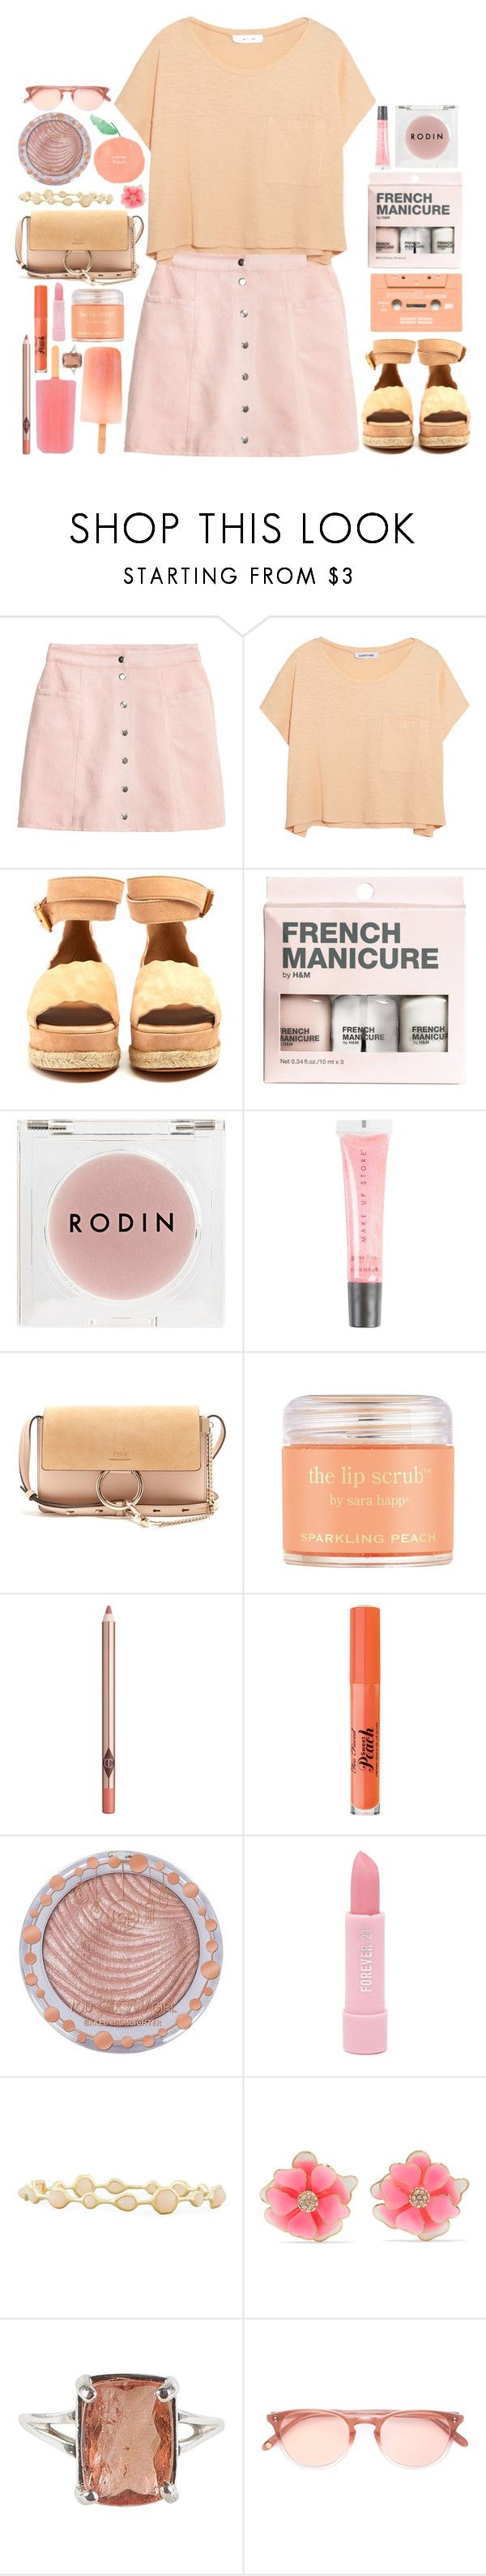 """pink and peach"" by issuri ❤ liked on Polyvore featuring H&M, Elizabeth and James, Chloé, Rodin Olio Lusso, MAKE UP STORE, Sara Happ, Charlotte Tilbury, Too Faced Cosmetics, Charlotte Russe and Forever 21"